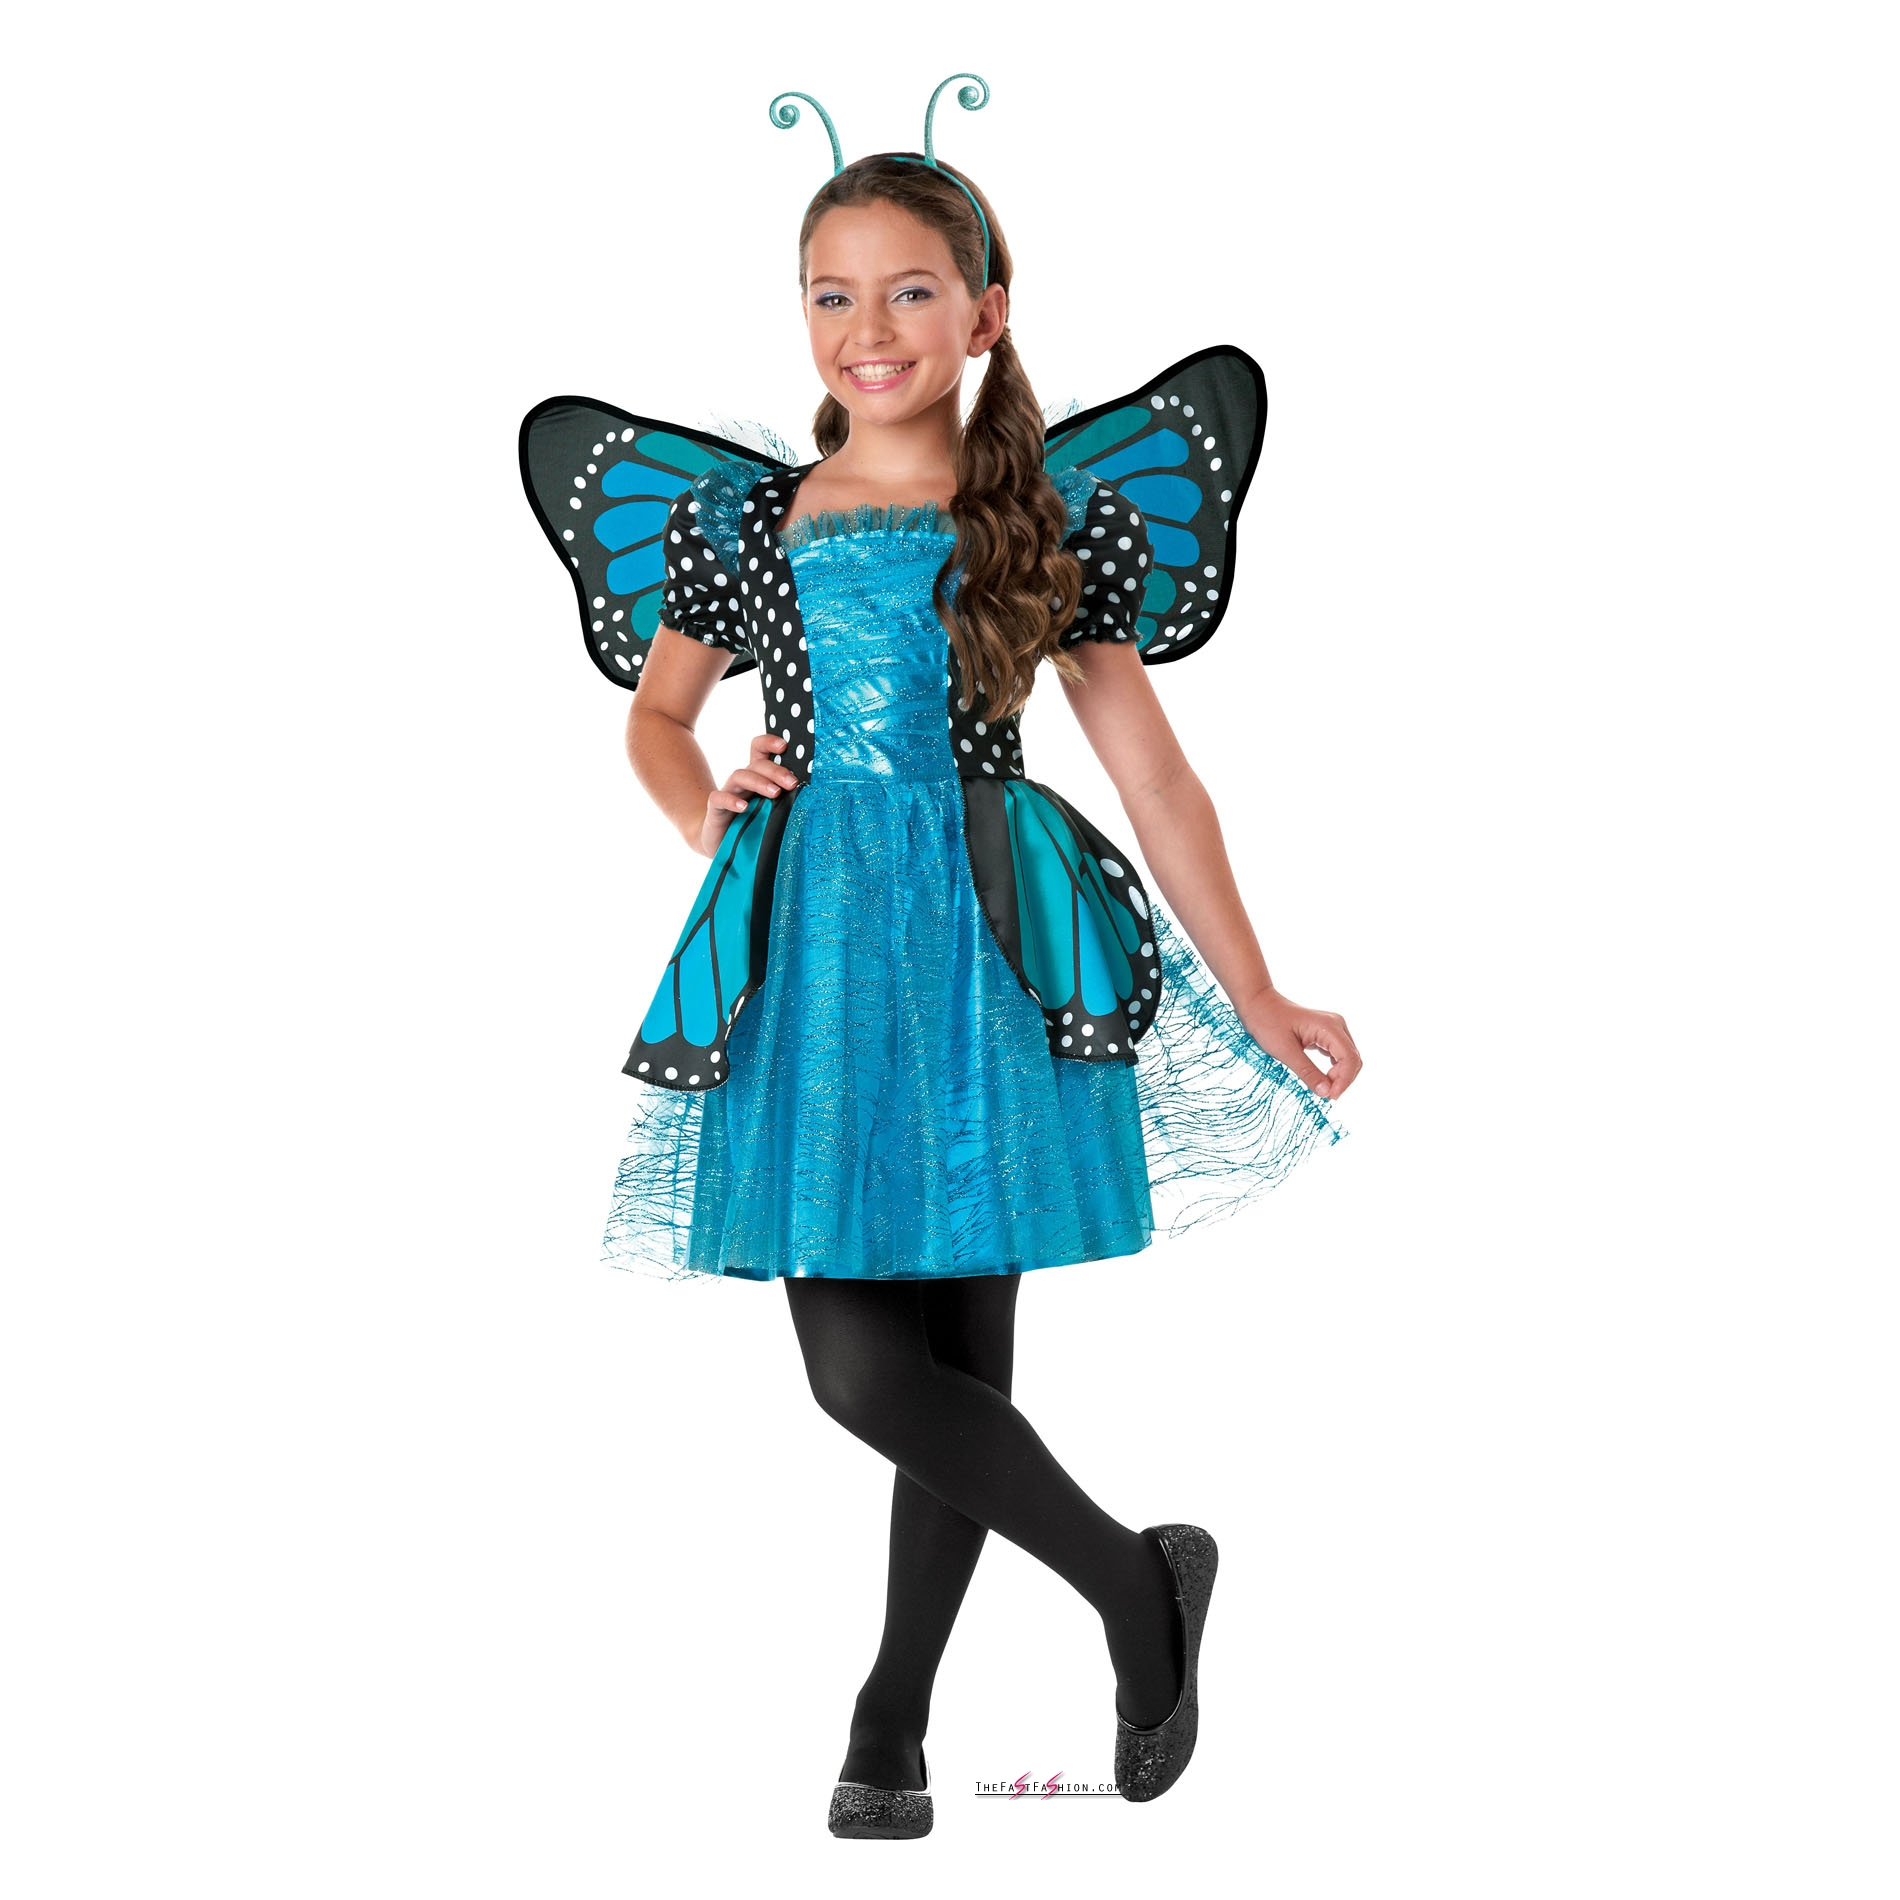 Girls' Witch Costumes. Showing 40 of results that match your query. Search Product Result. Product - Rubies Kids Girls Sparkly Witch Halloween Costume with Lights. Product Image. Price $ 79 - $ Product Title. Rubies Kids Girls Sparkly Witch Halloween Costume .